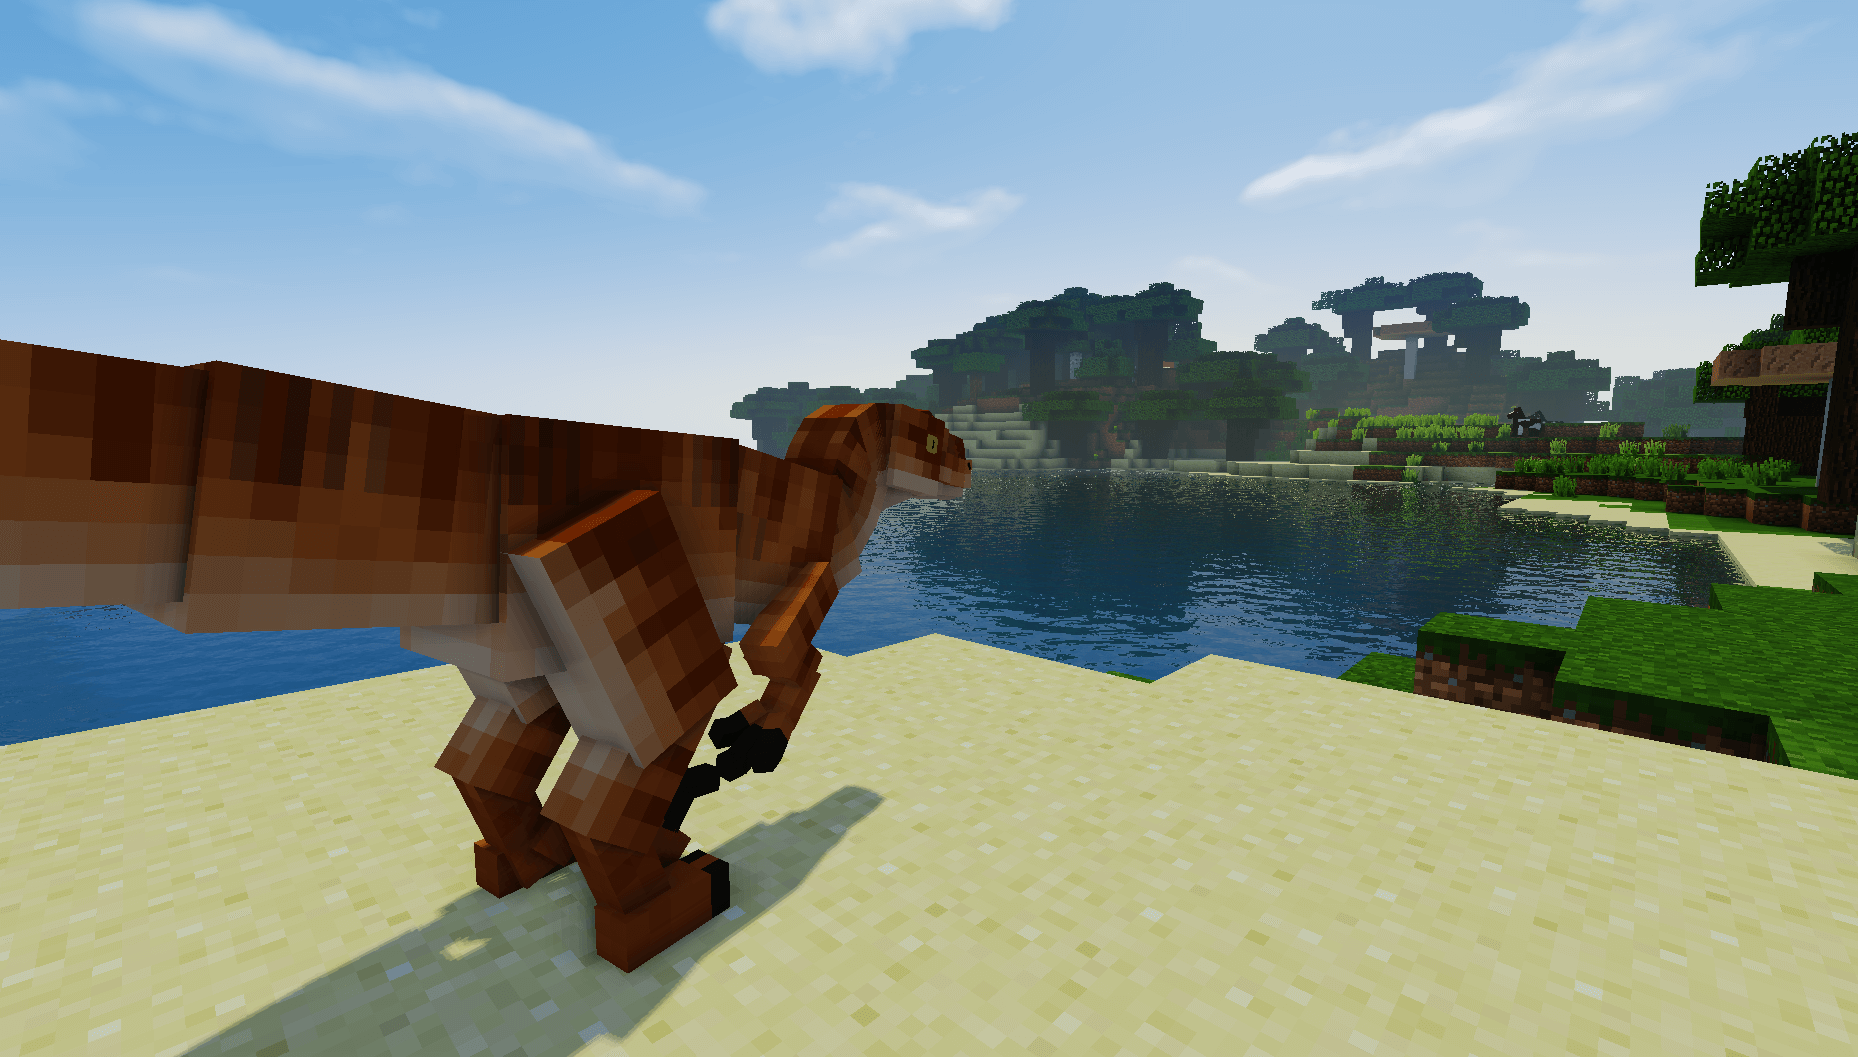 Mod JurassiCraft - The-Minecraft.fr